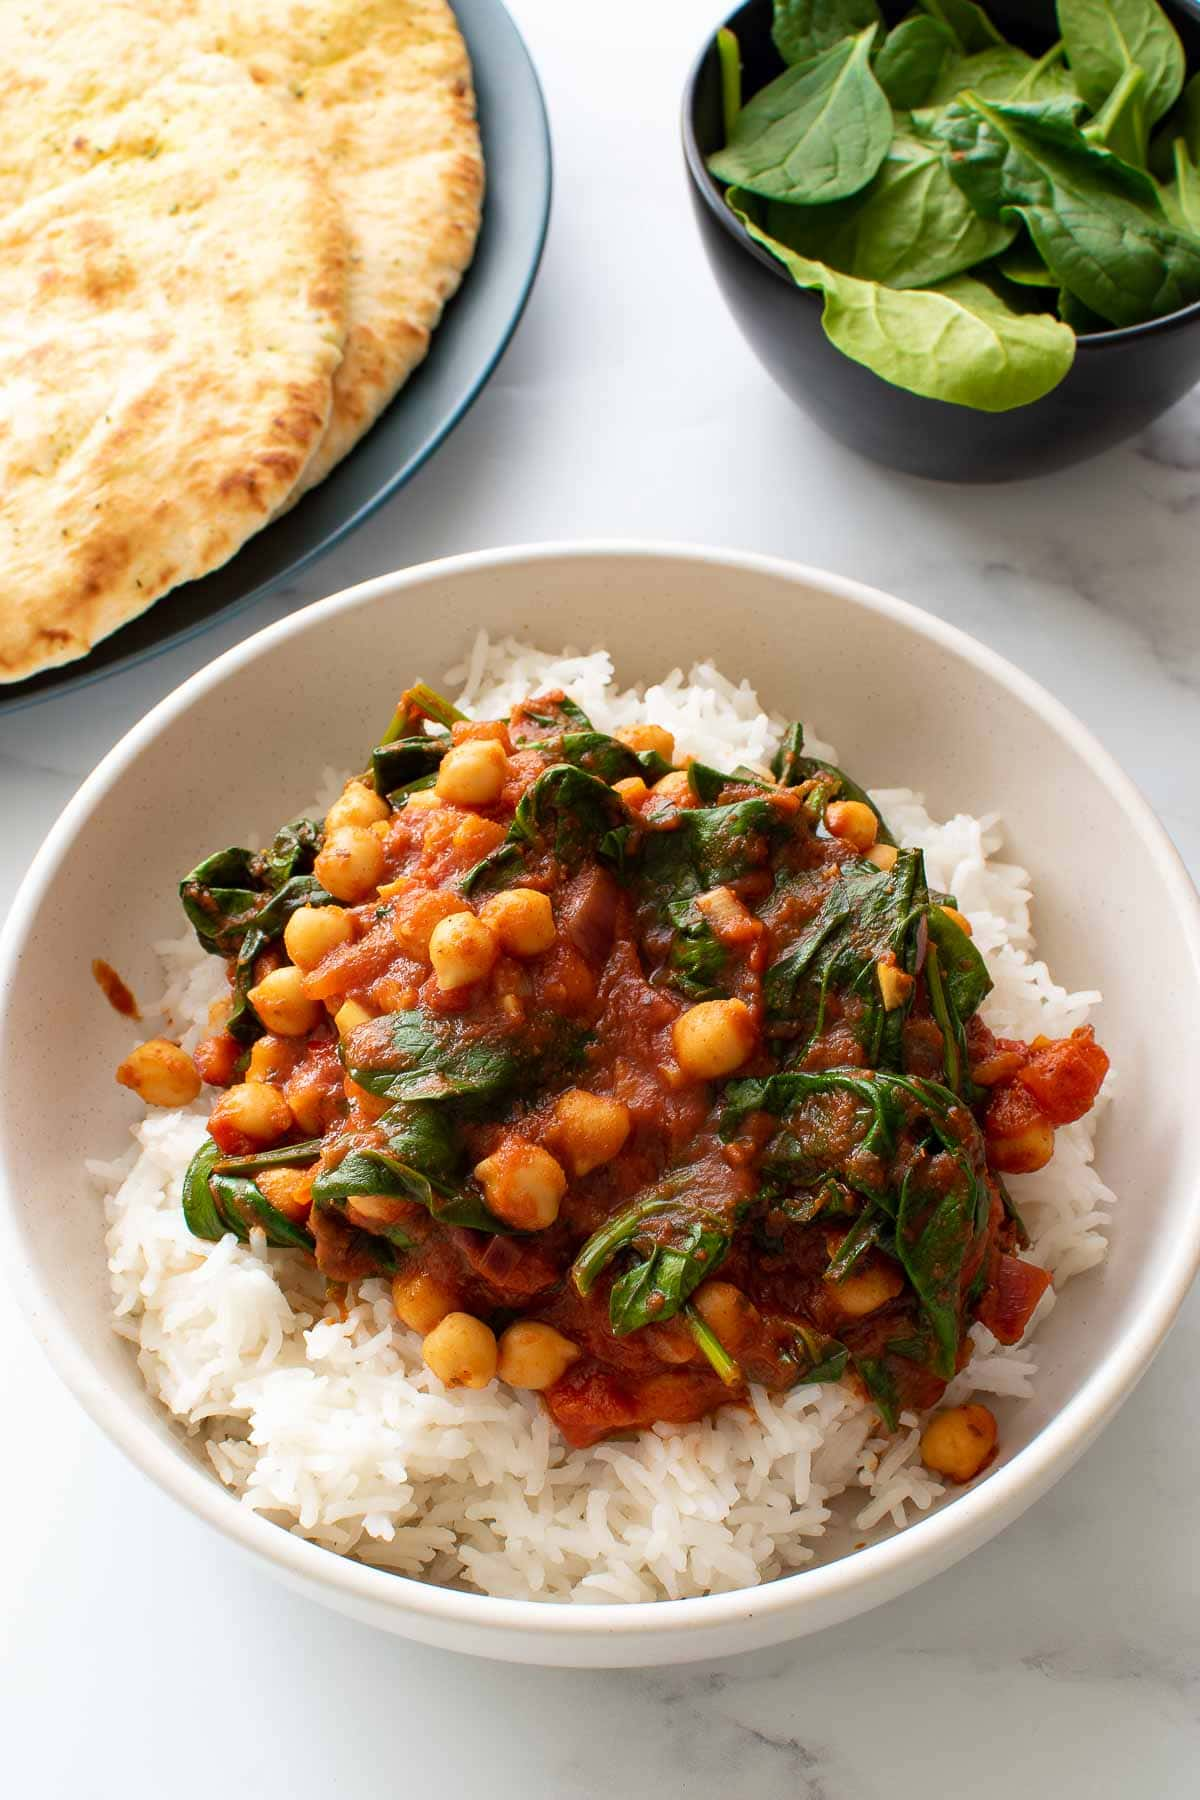 Chickpea and spinach curry in a bowl with rice.